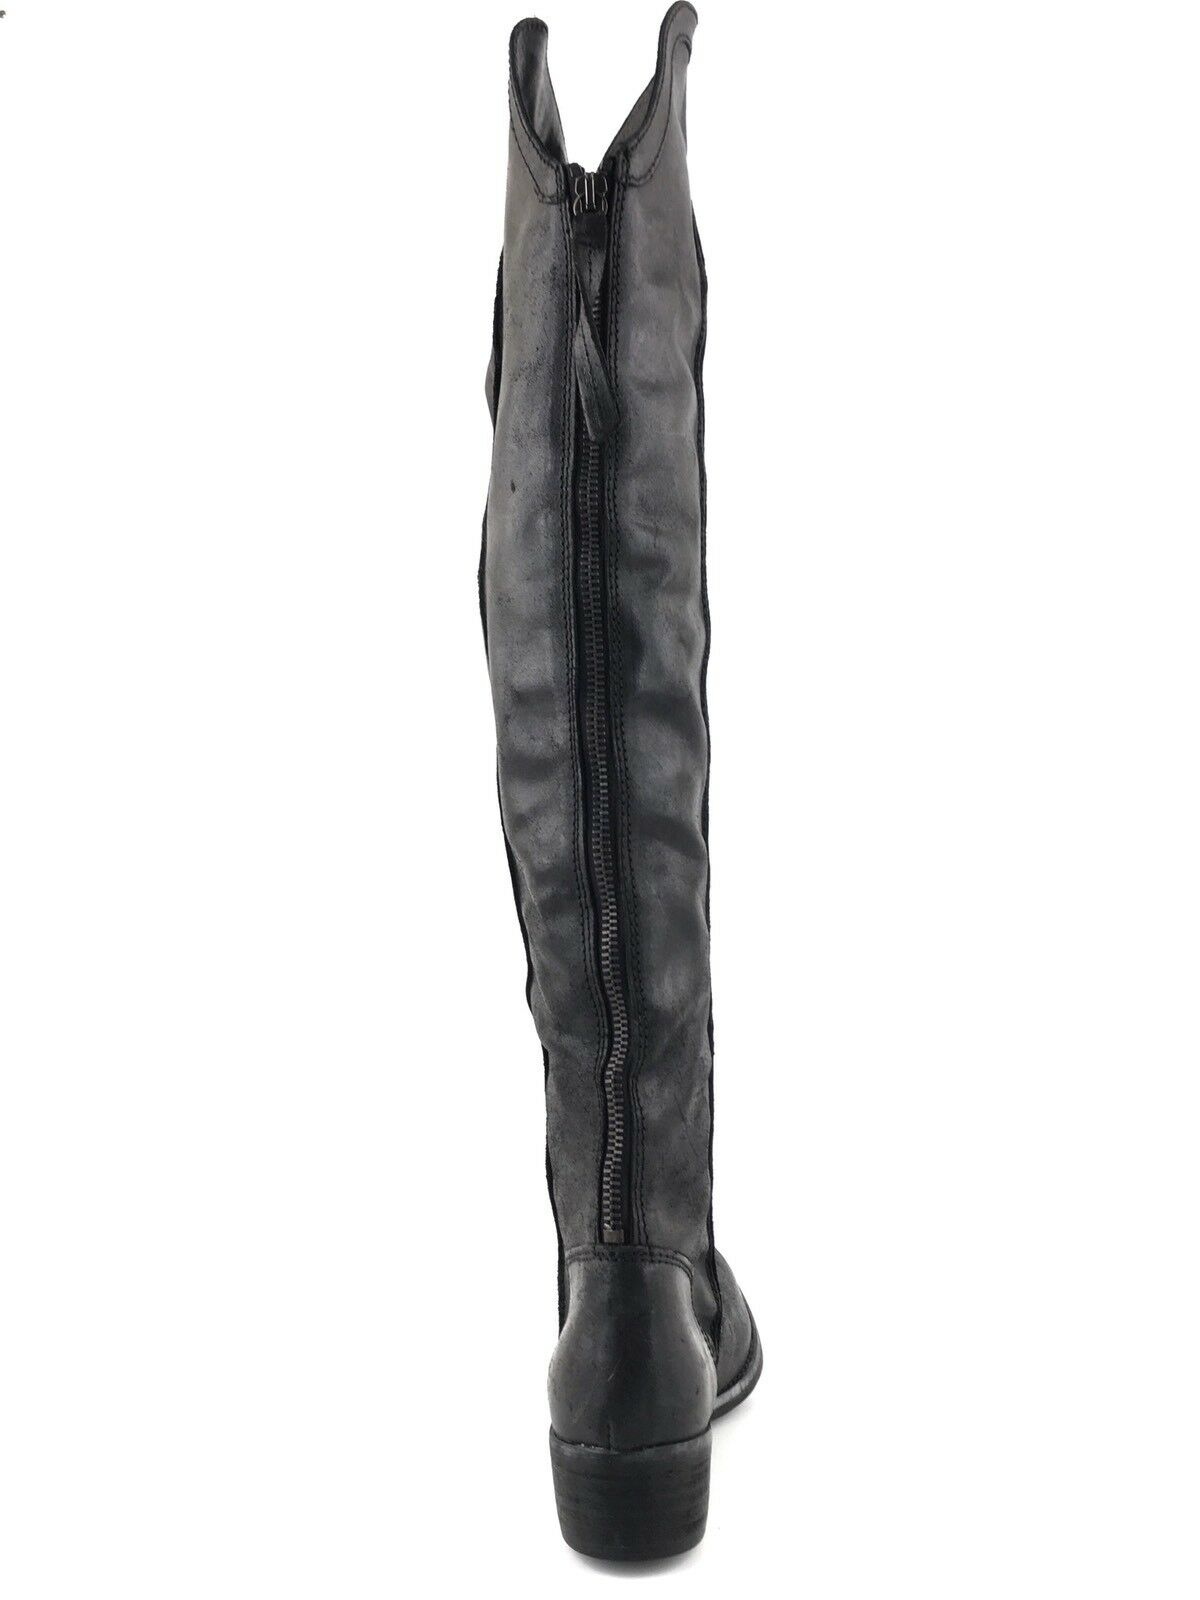 KG KG KG Kurt Geiger Wentworth Black Leather Over The Knee Boots Women's Size 37 M 696cf0